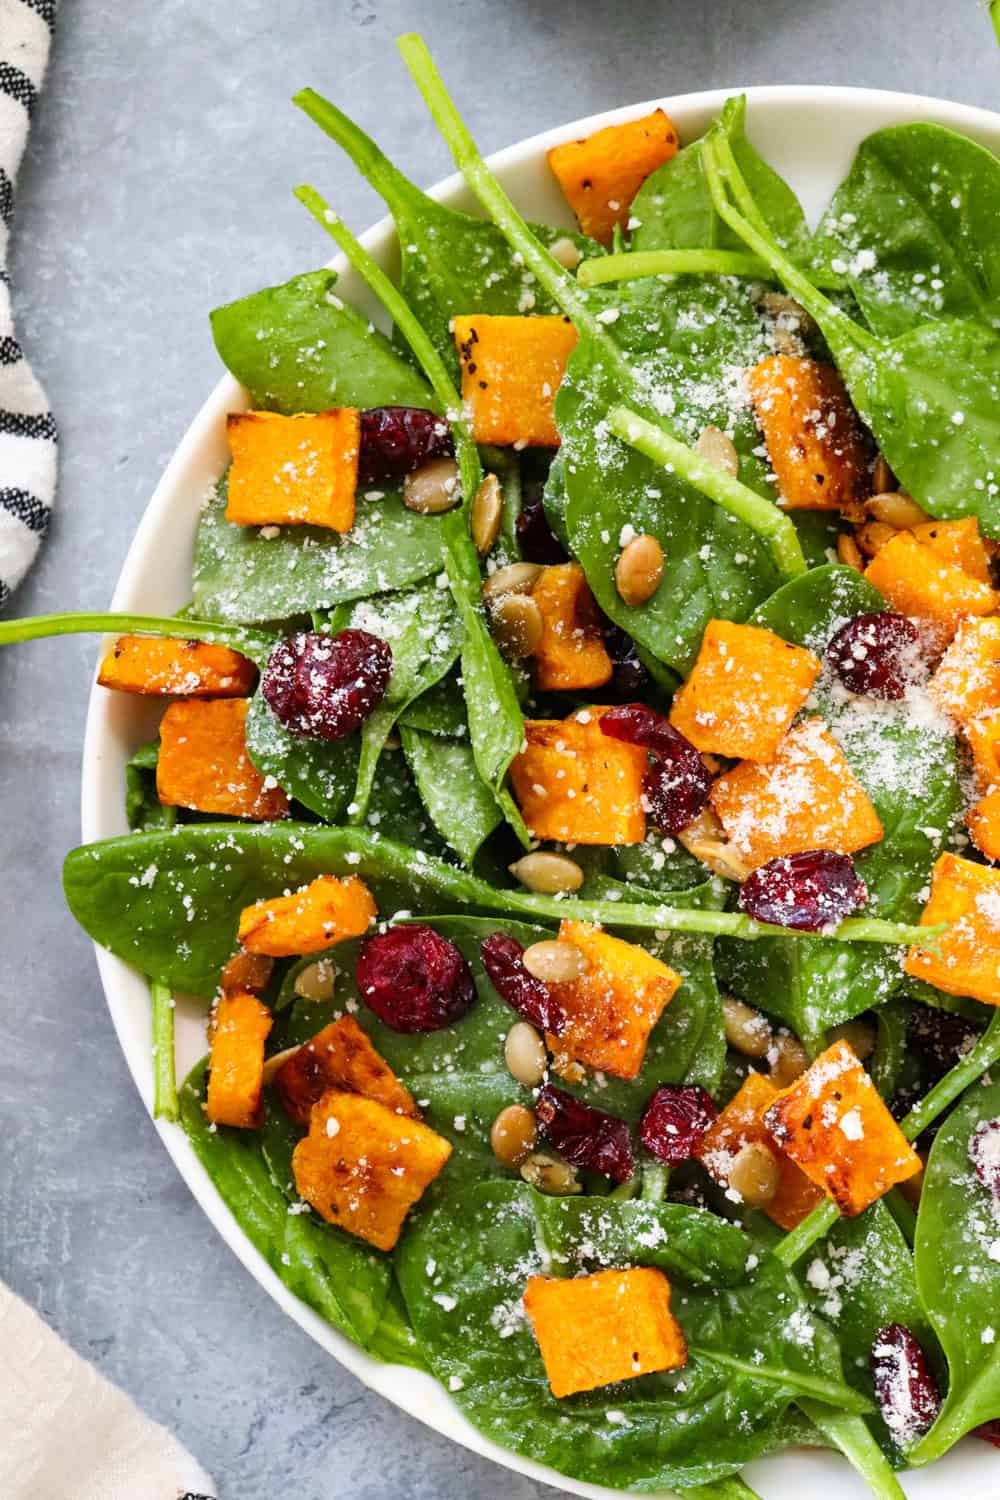 cubed roasted butternut squash on spinach salad with parmesan cheese and cranberries on it